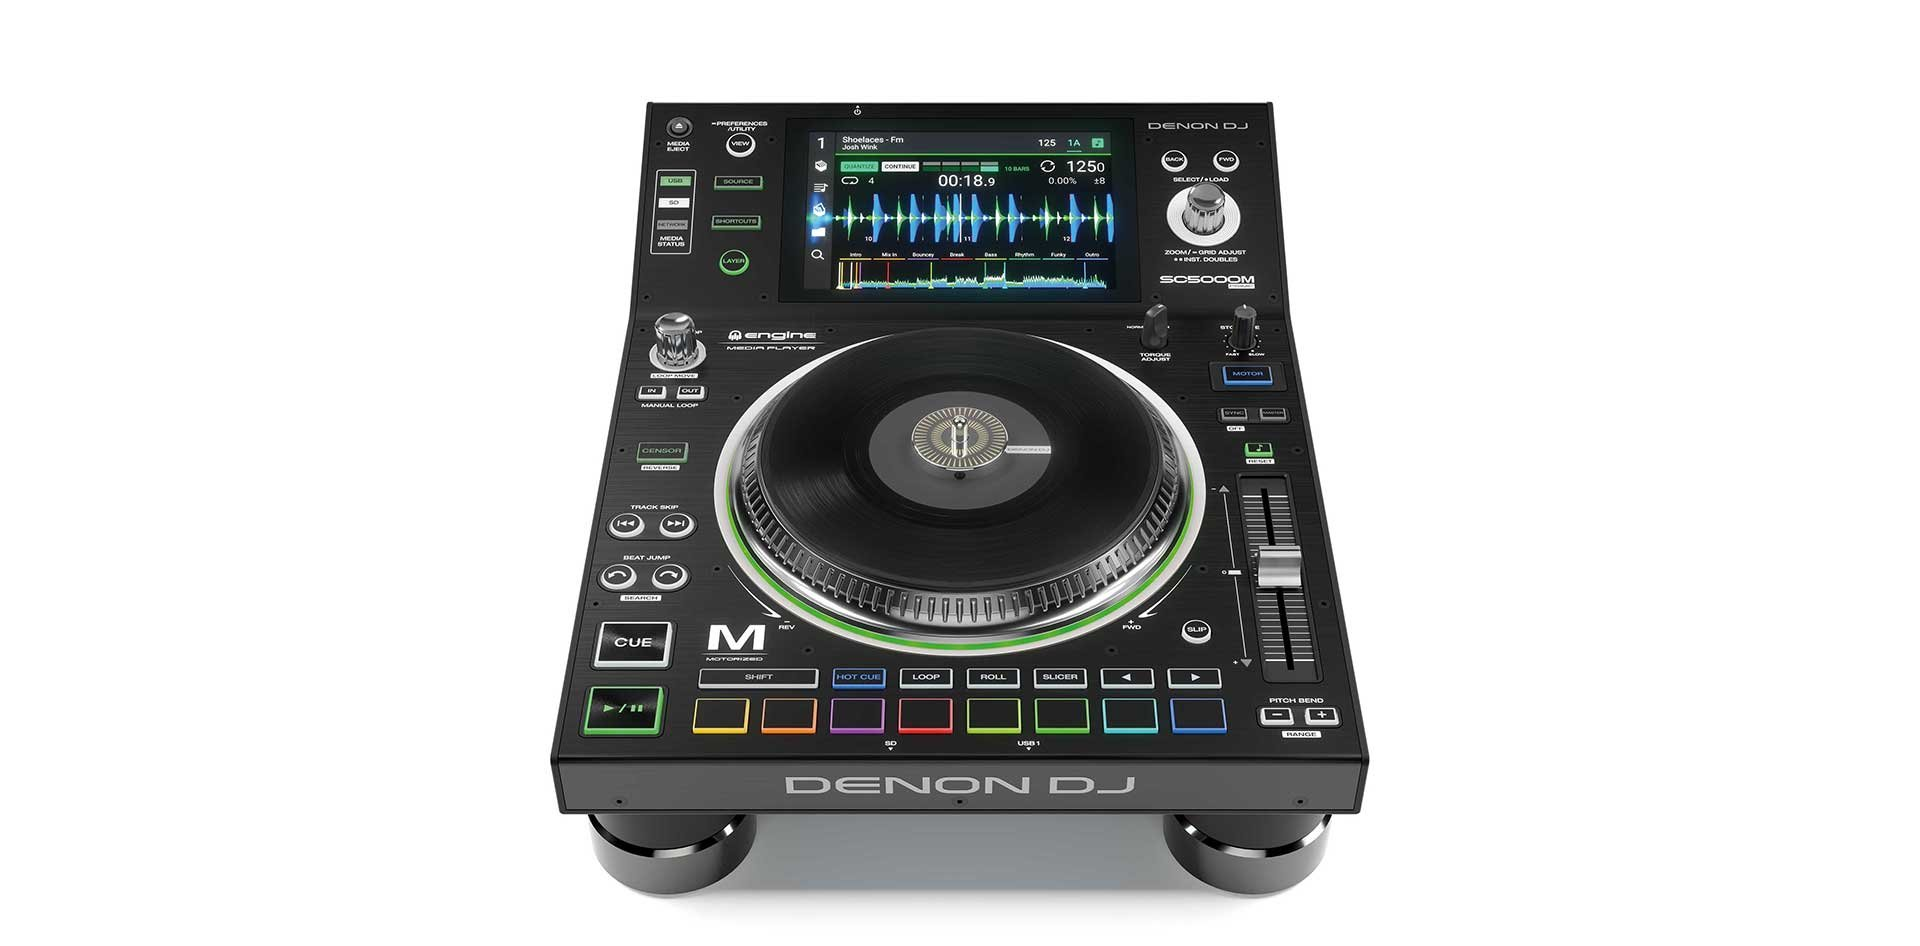 Denon DJ SC-5000M Prime - Professional DJ Media Player with 7 Display